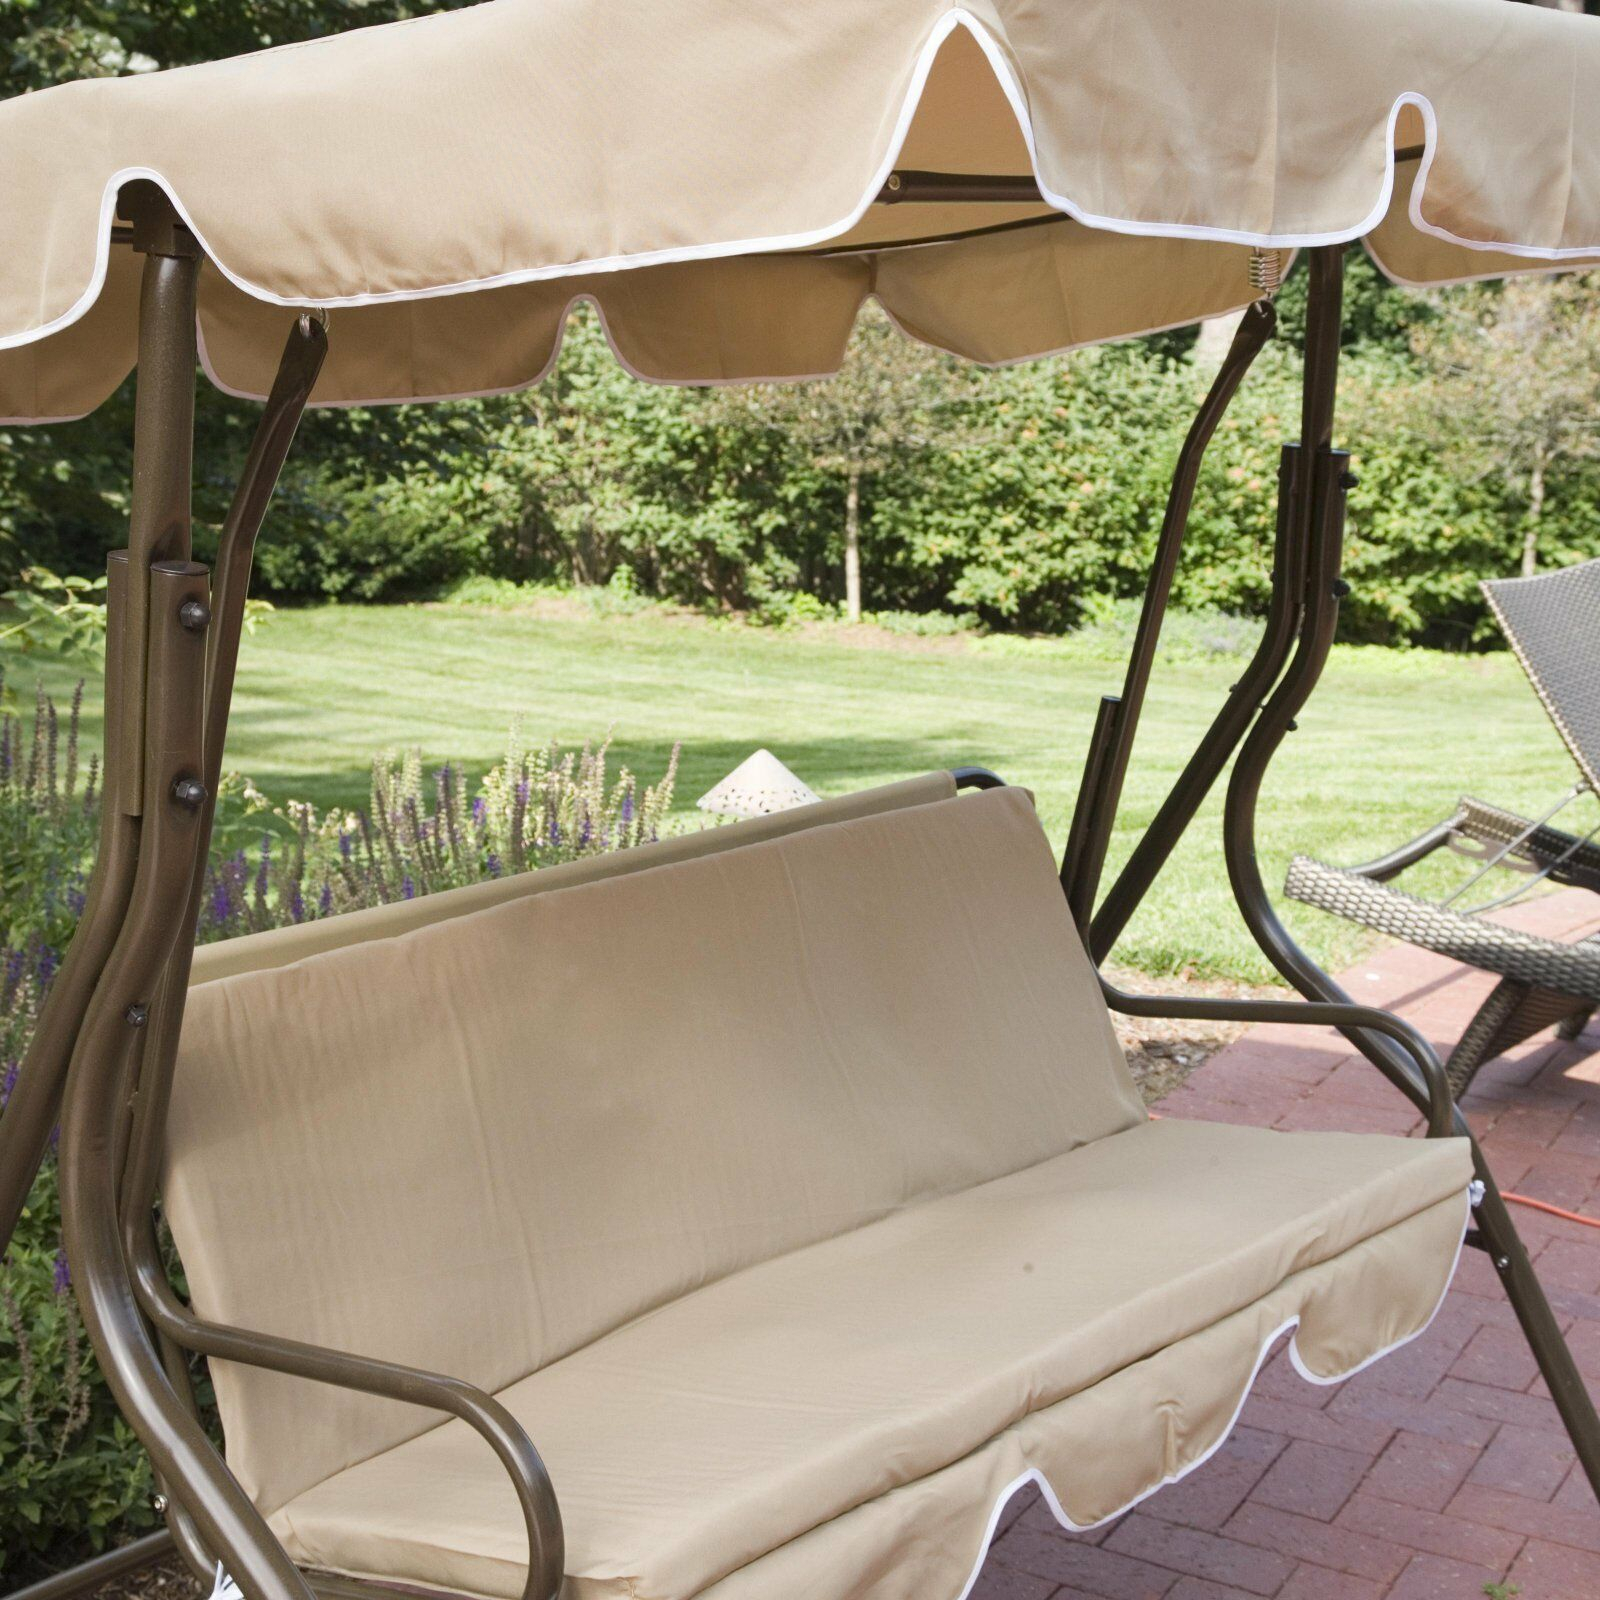 Patio Swing With Canopy Outdoor Adjustable 2 Person Tilt Porch Swings Metal Within 2 Person Adjustable Tilt Canopy Patio Loveseat Porch Swings (Image 21 of 25)